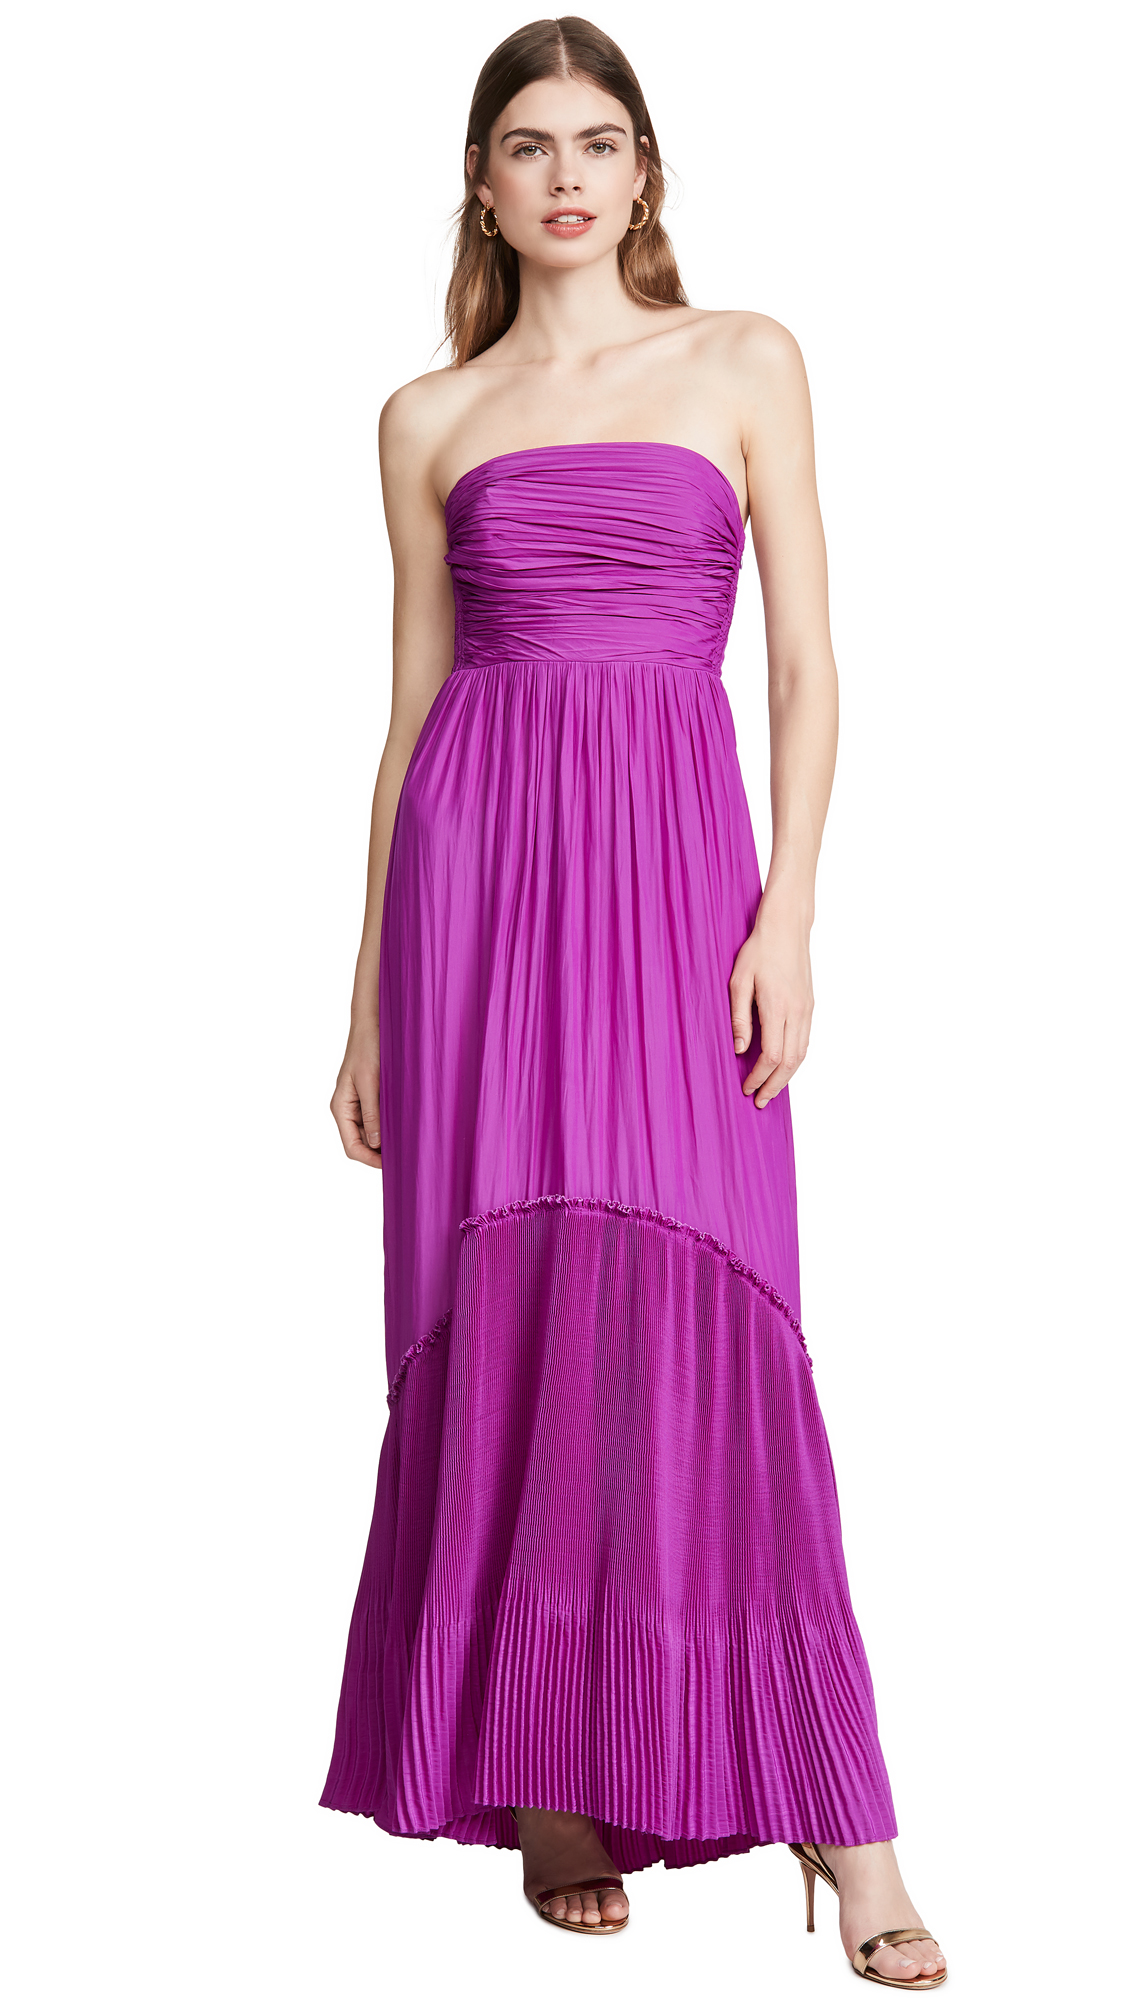 Ramy Brook Rylee Dress - 30% Off Sale